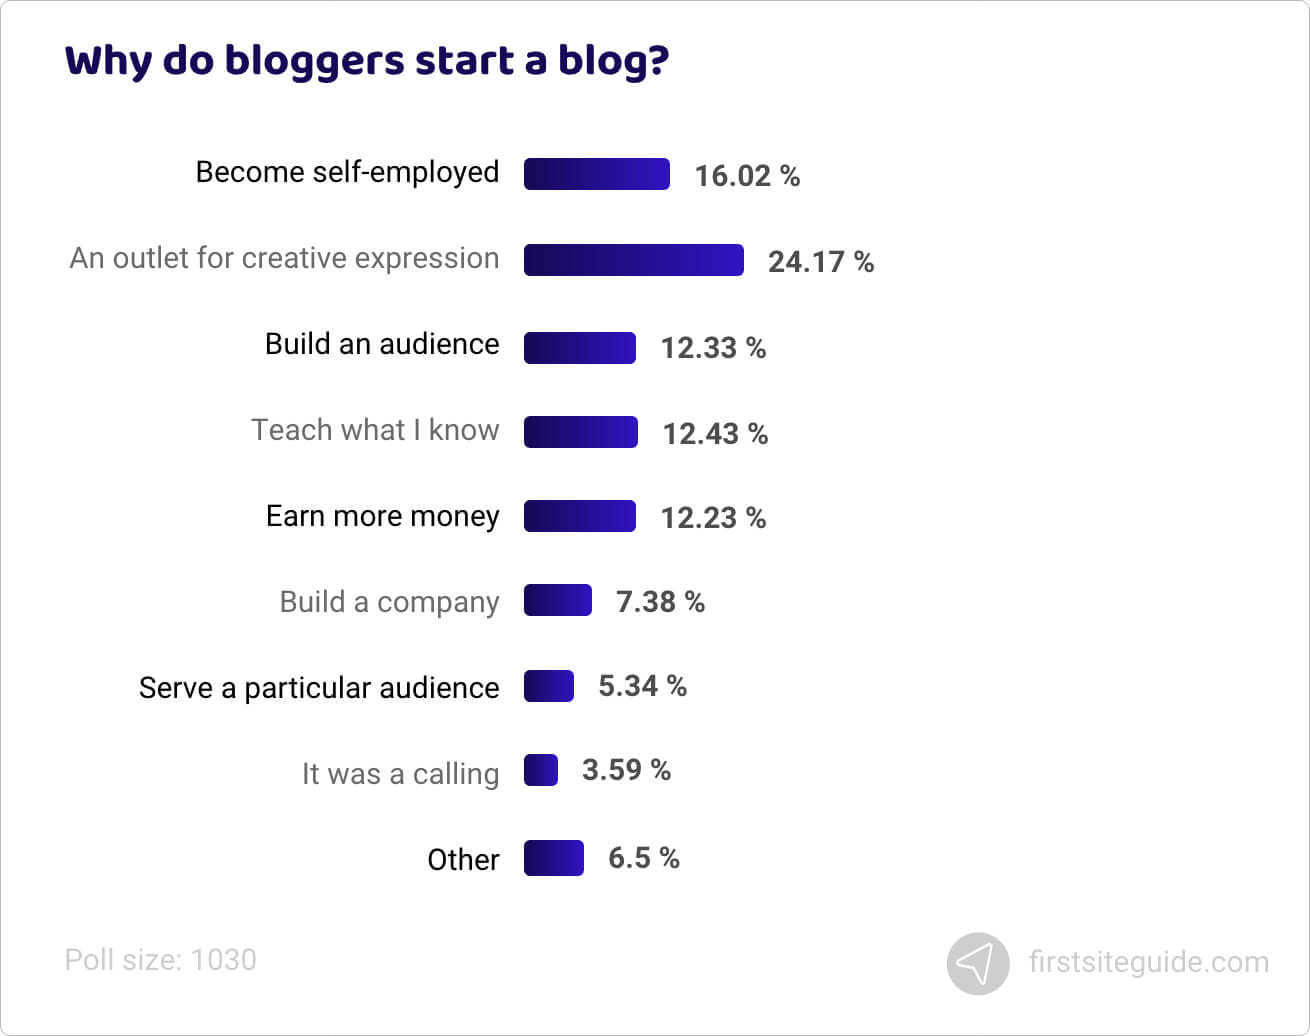 Why do bloggers start a blog